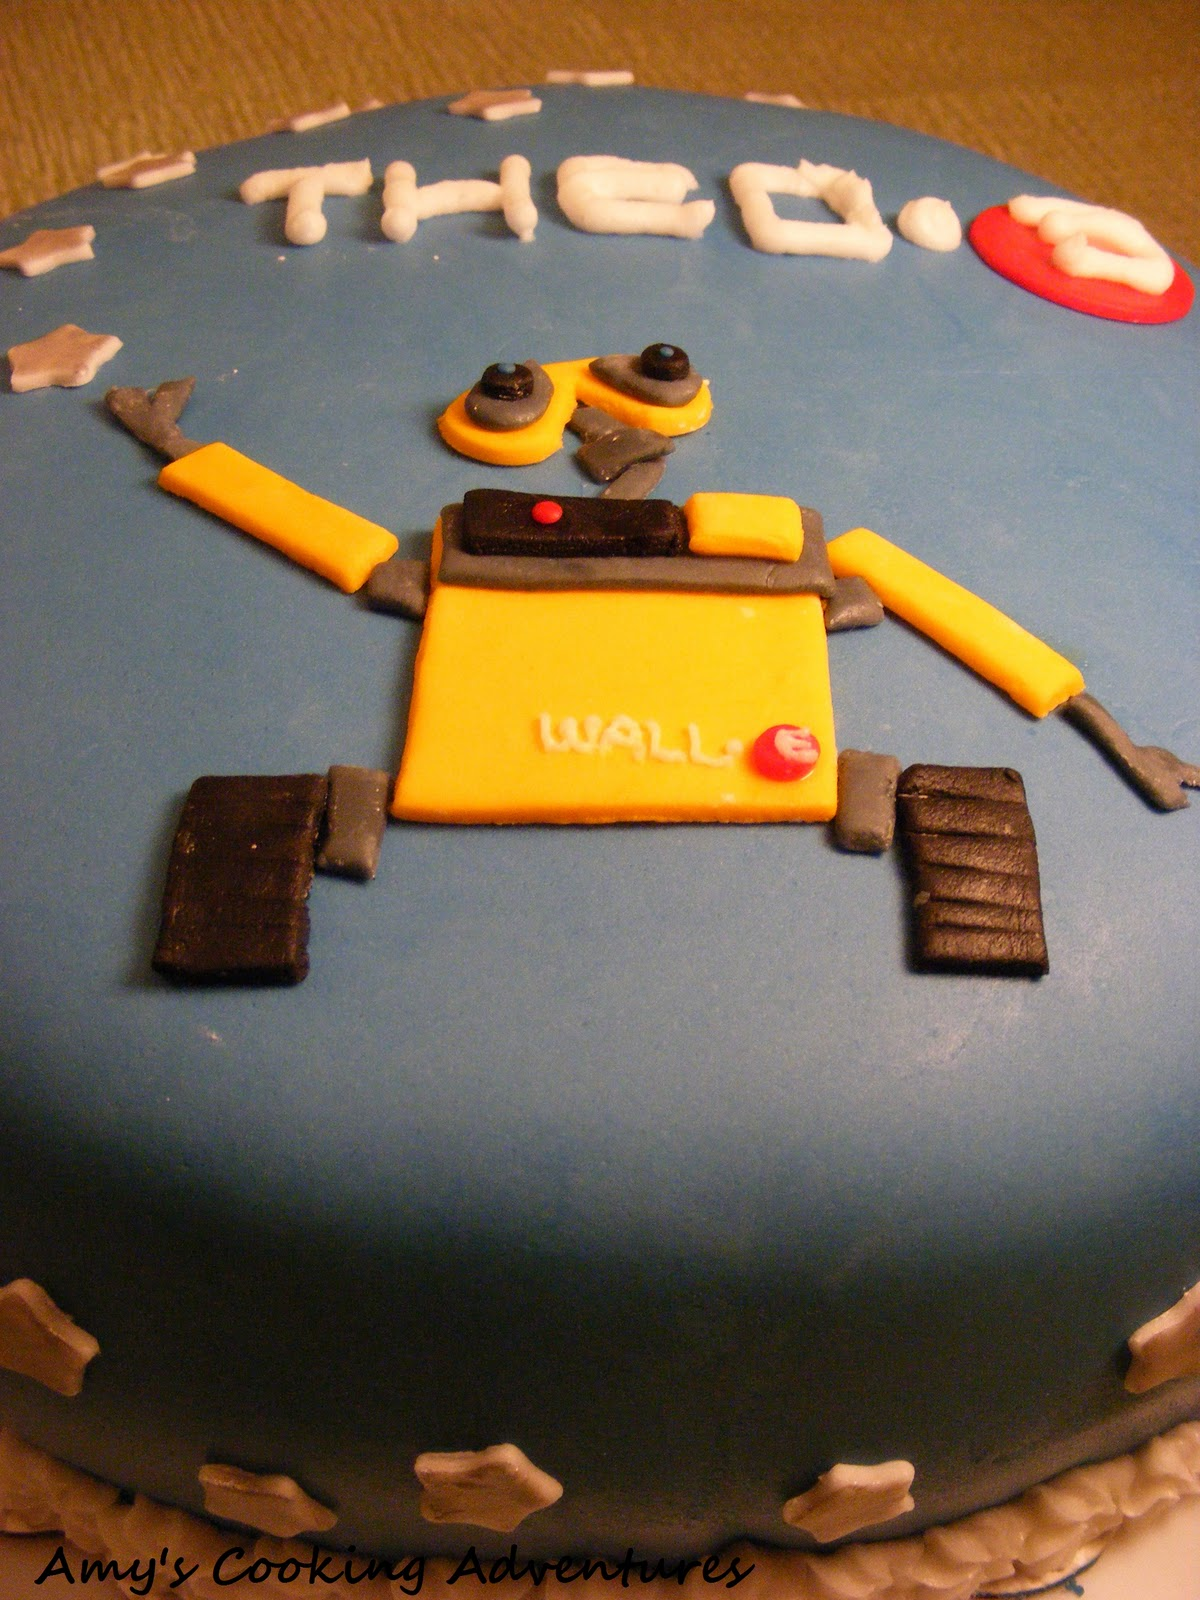 At The Time He Watched Movie Wall E Nearly Everyday So I Knew Hed Love A Themed Cake